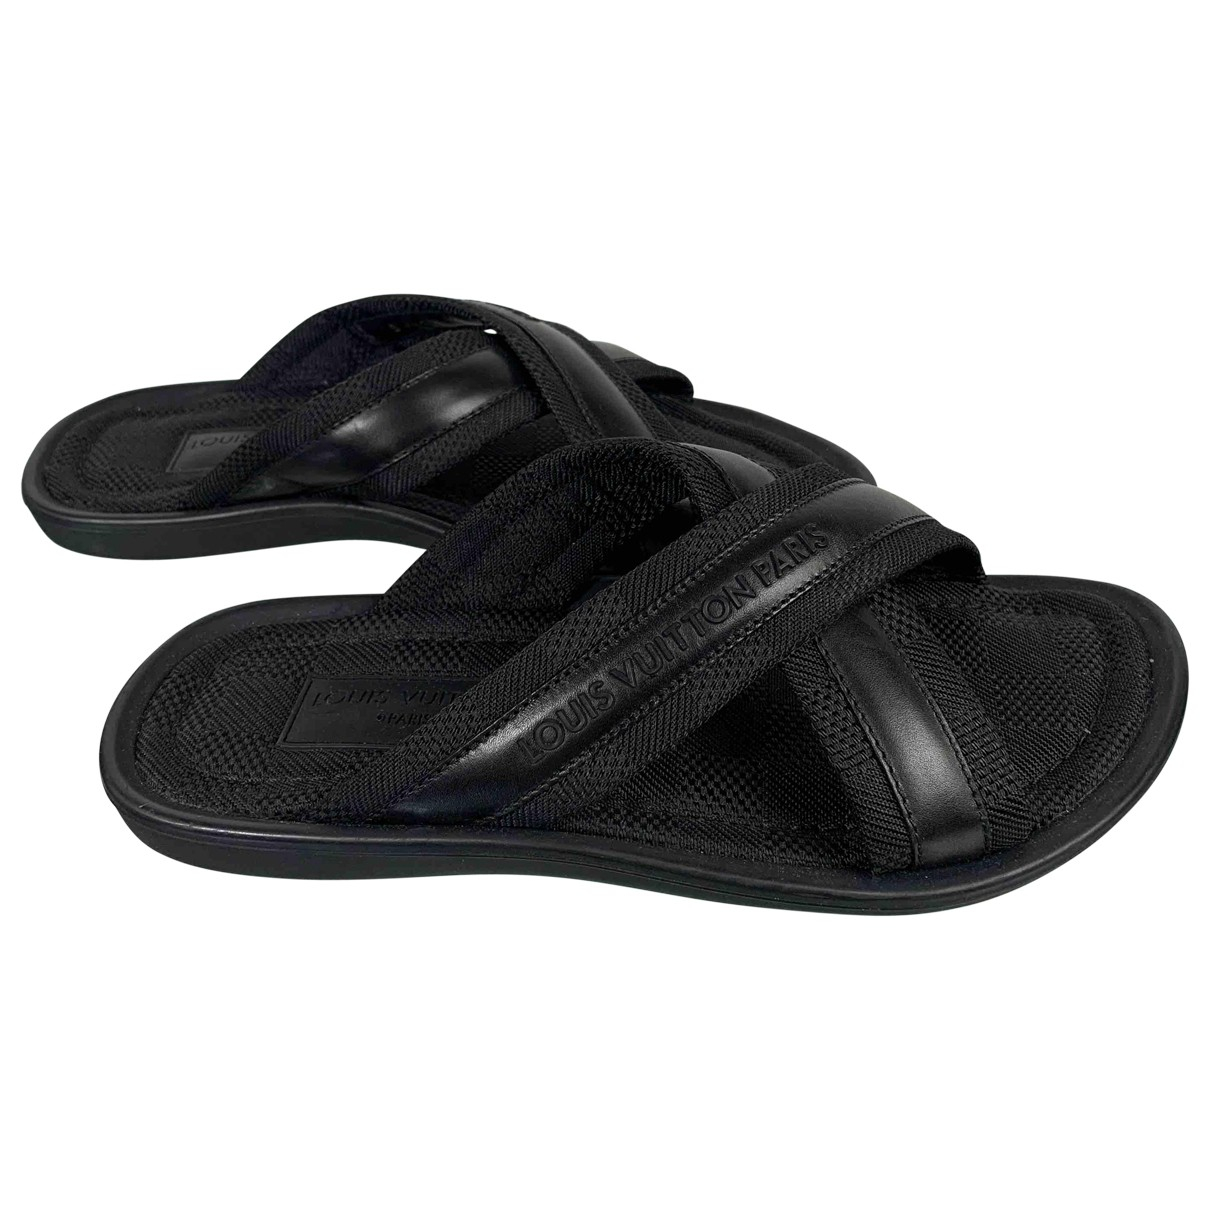 Louis Vuitton \N Sandalen in  Schwarz Leinen